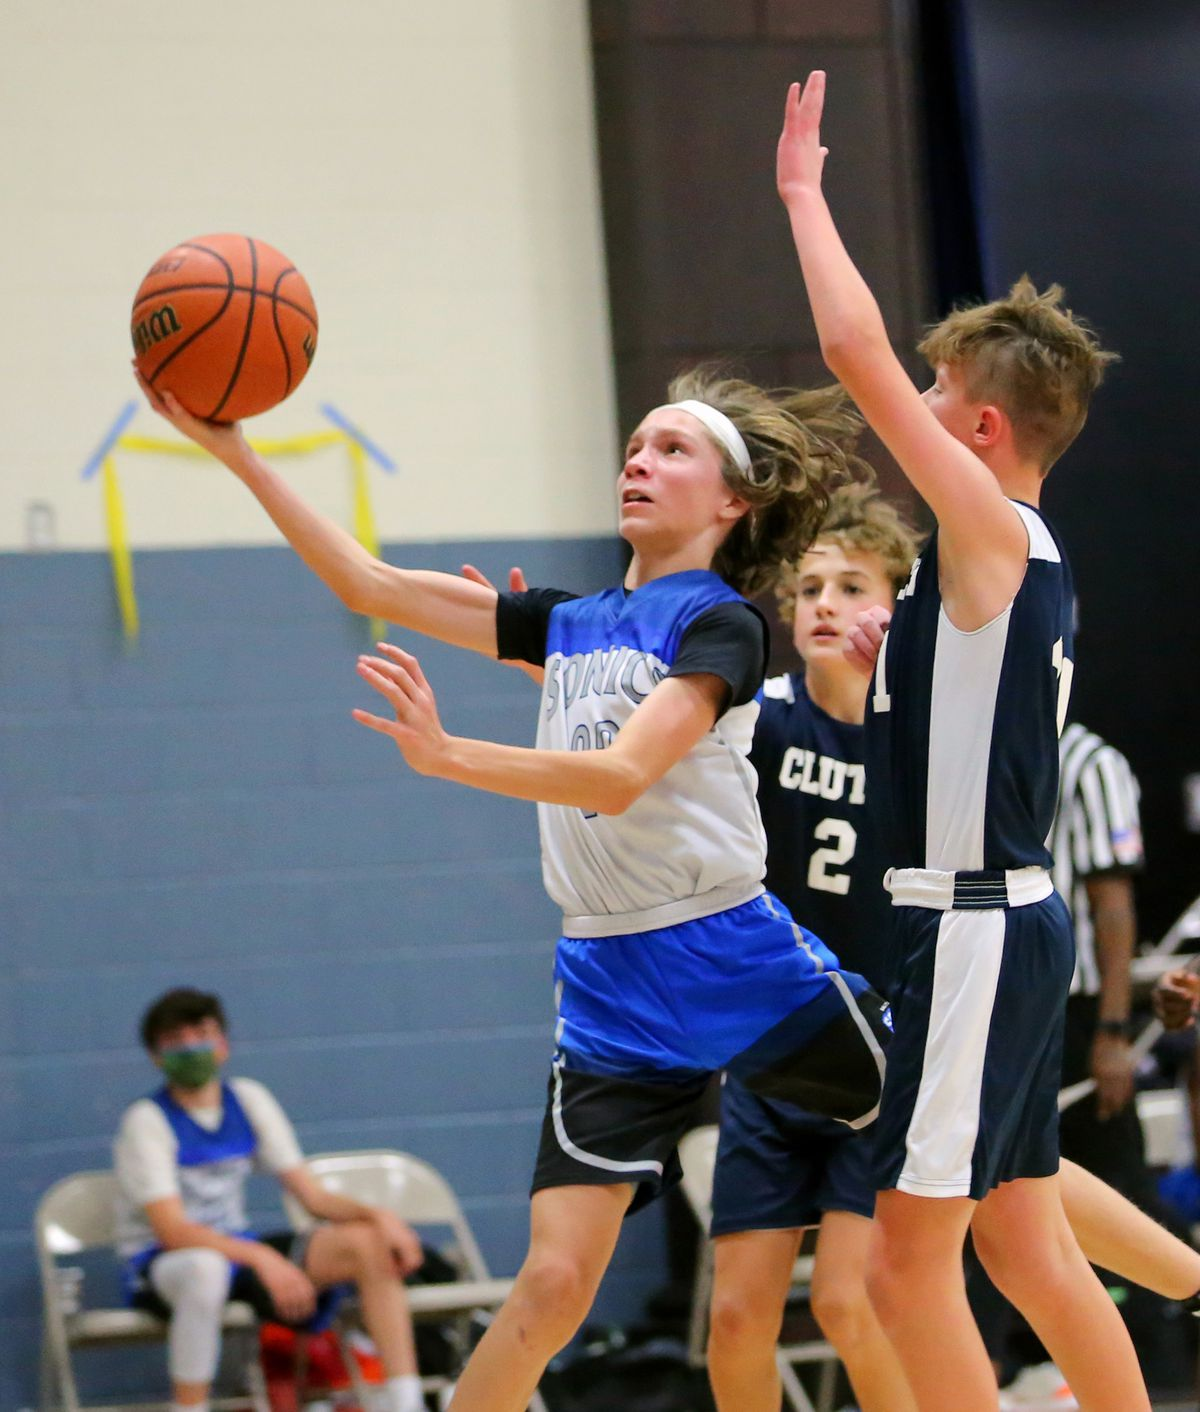 Kai Flickinger pushes up the ball for a shot as he and his teammates on the Sonics play Clutch in a youth basketball game at Providence Hall Junior High in Herriman Utah on Saturday, Dec. 19, 2020.